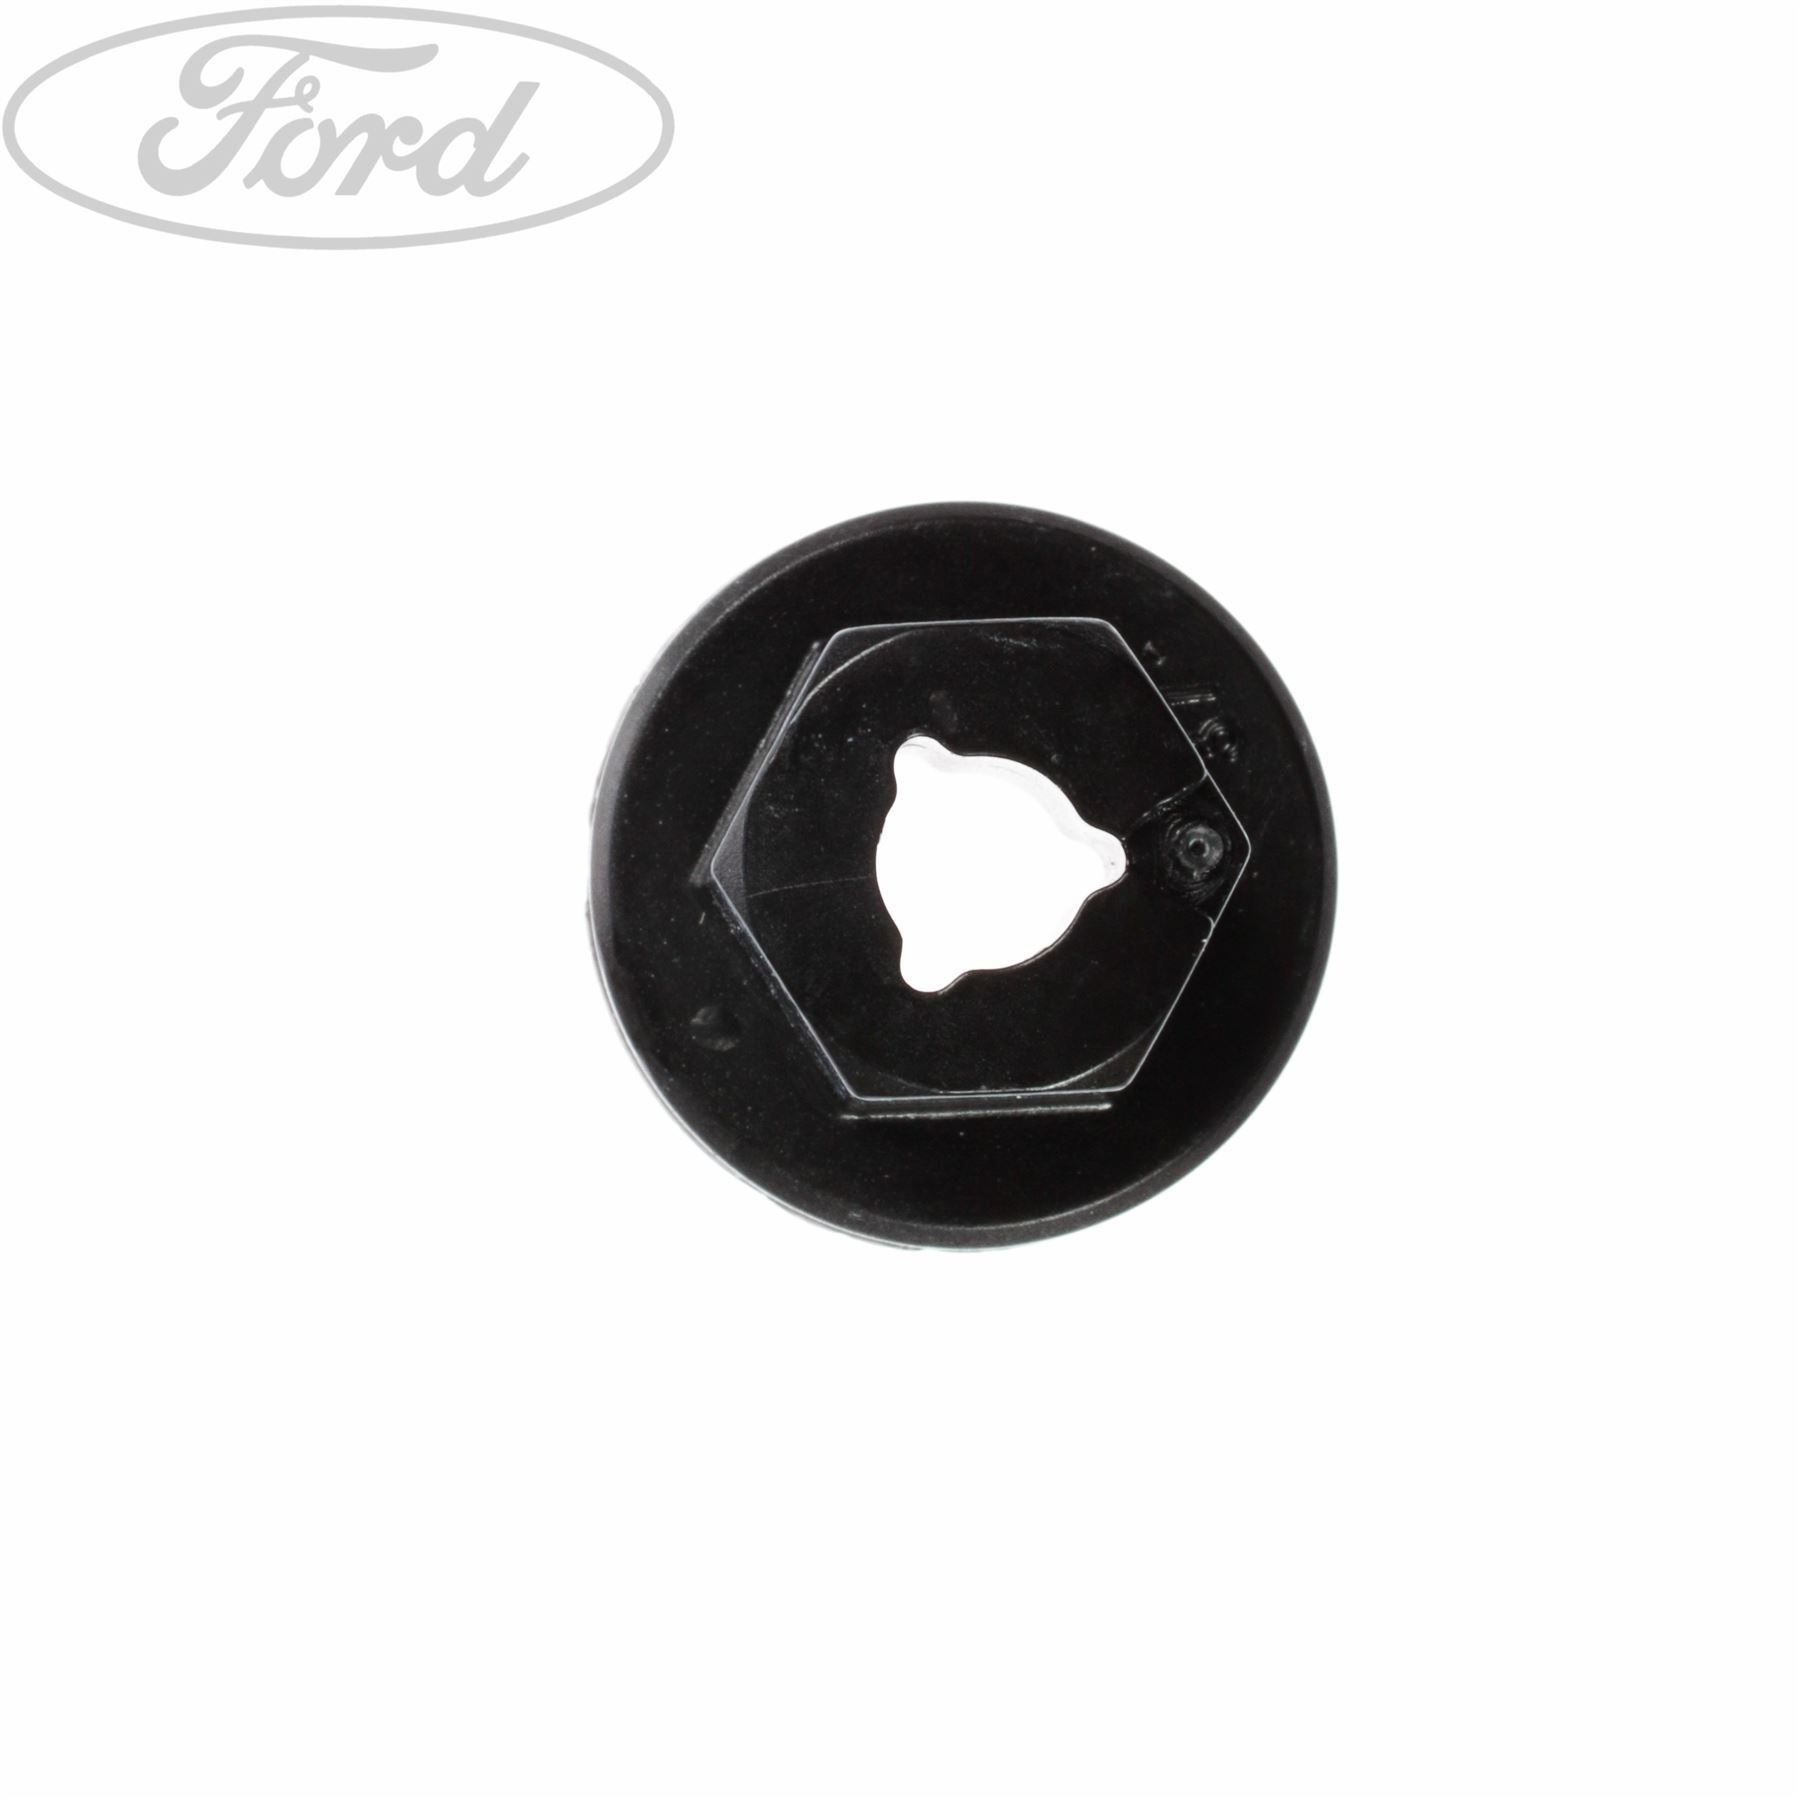 FORD PANEL CLIPS GREY X20 RIV 10